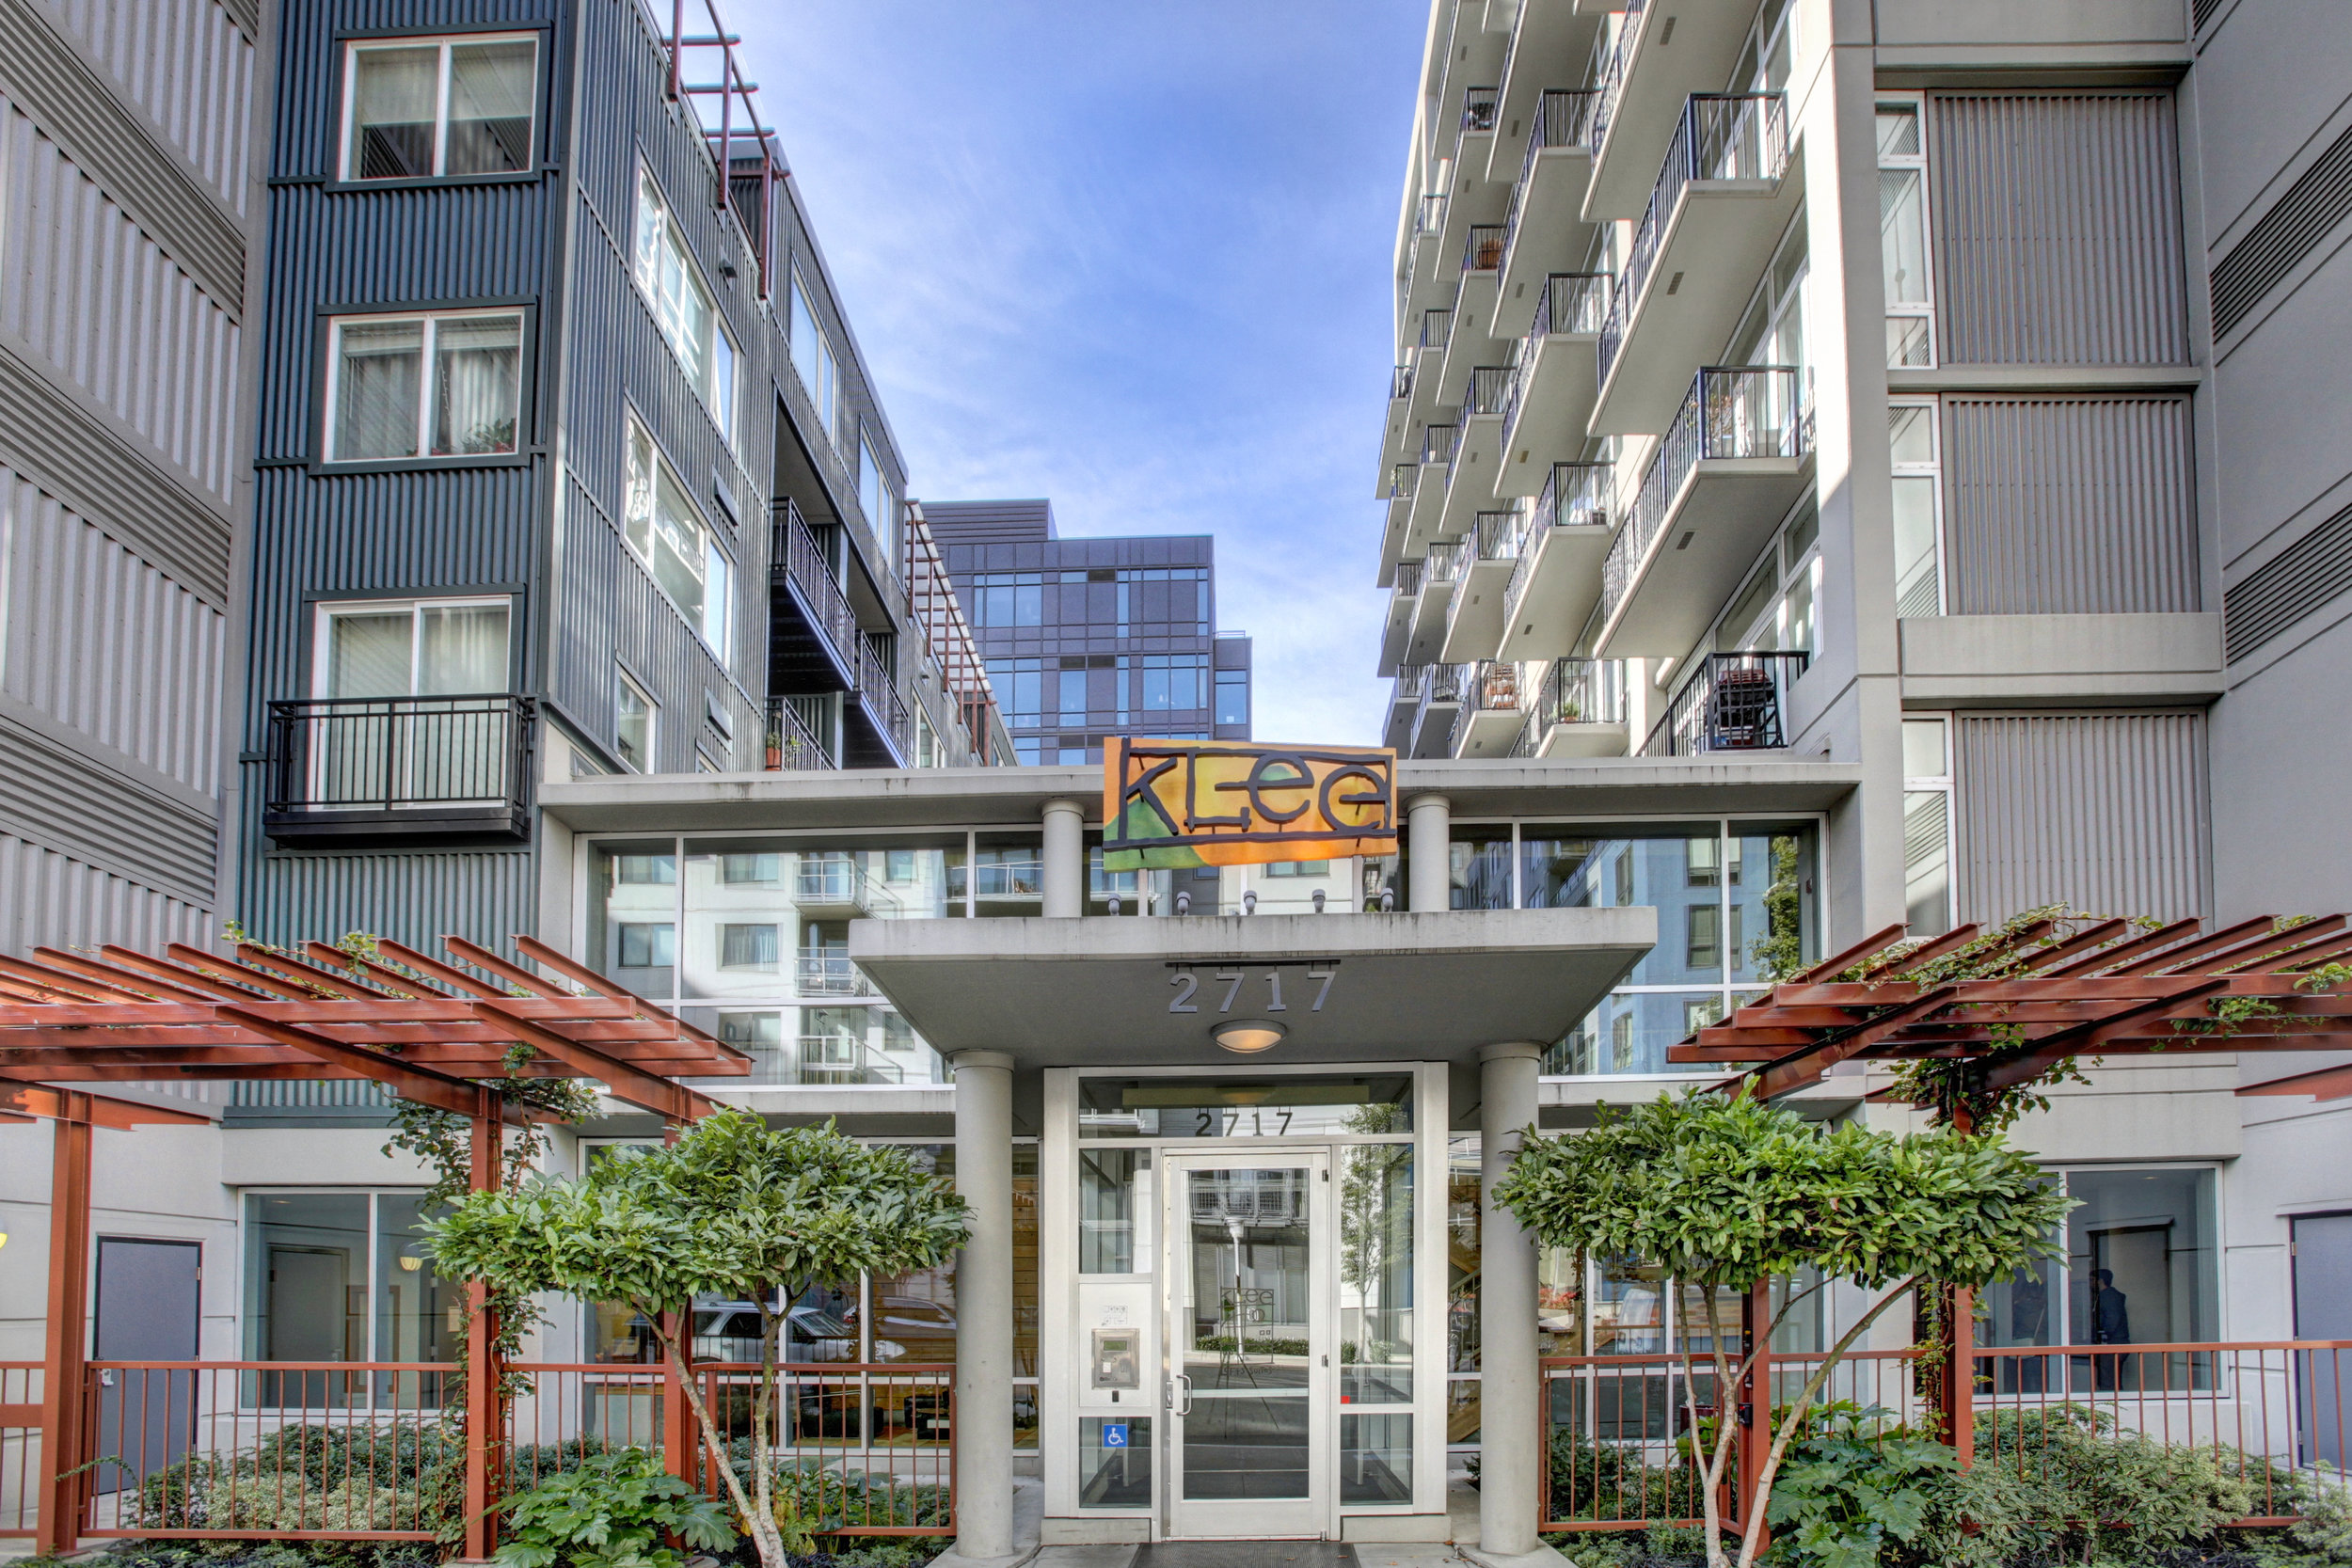 The Klee Loft and Suites